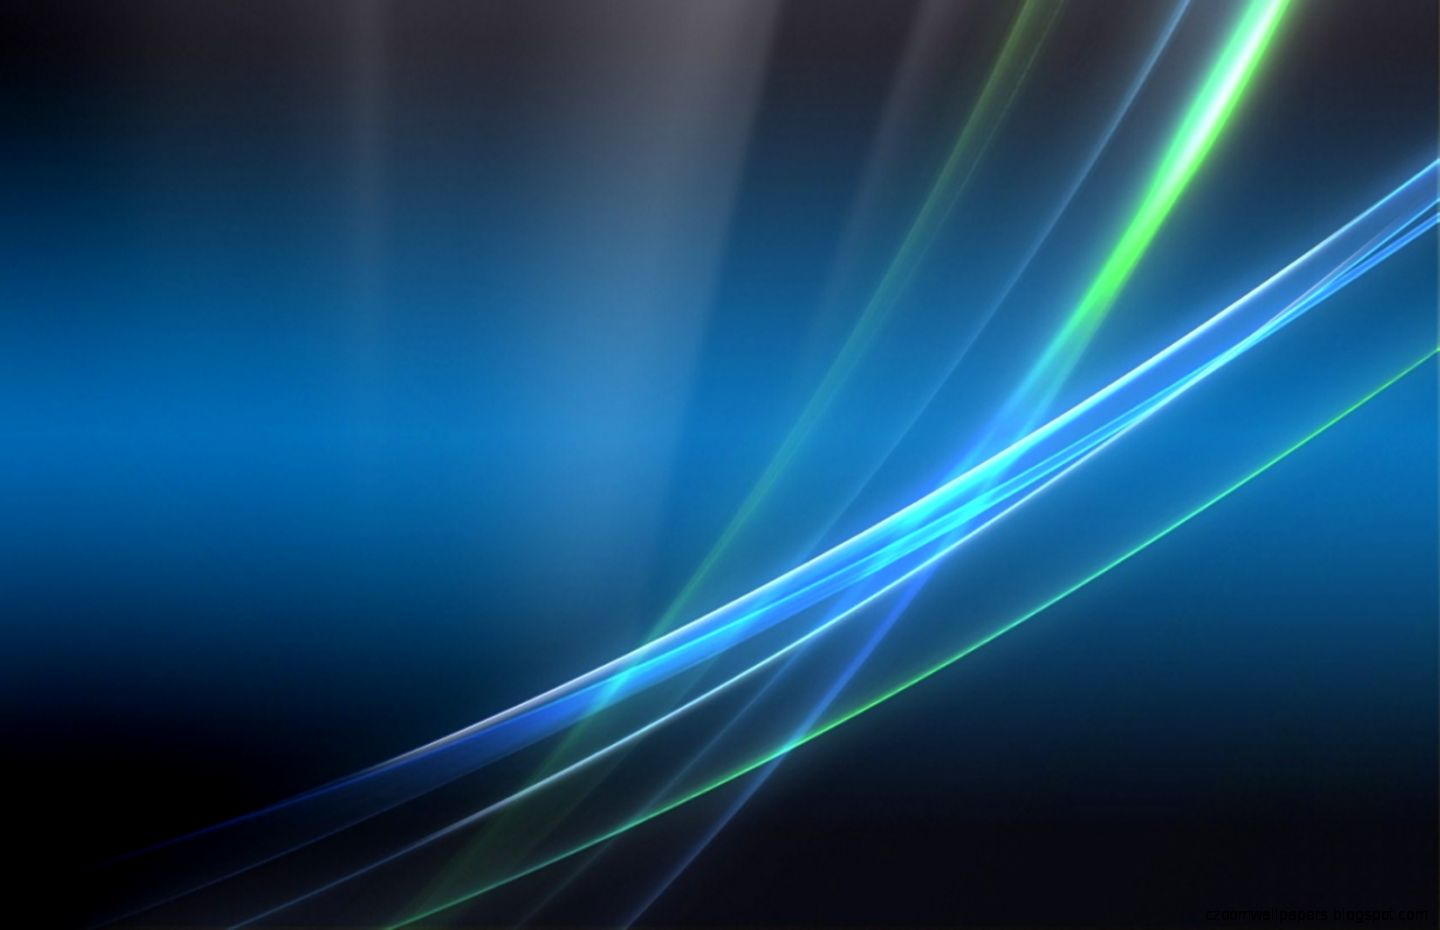 Windows wallpaper backgrounds zoom wallpapers for Brand windows